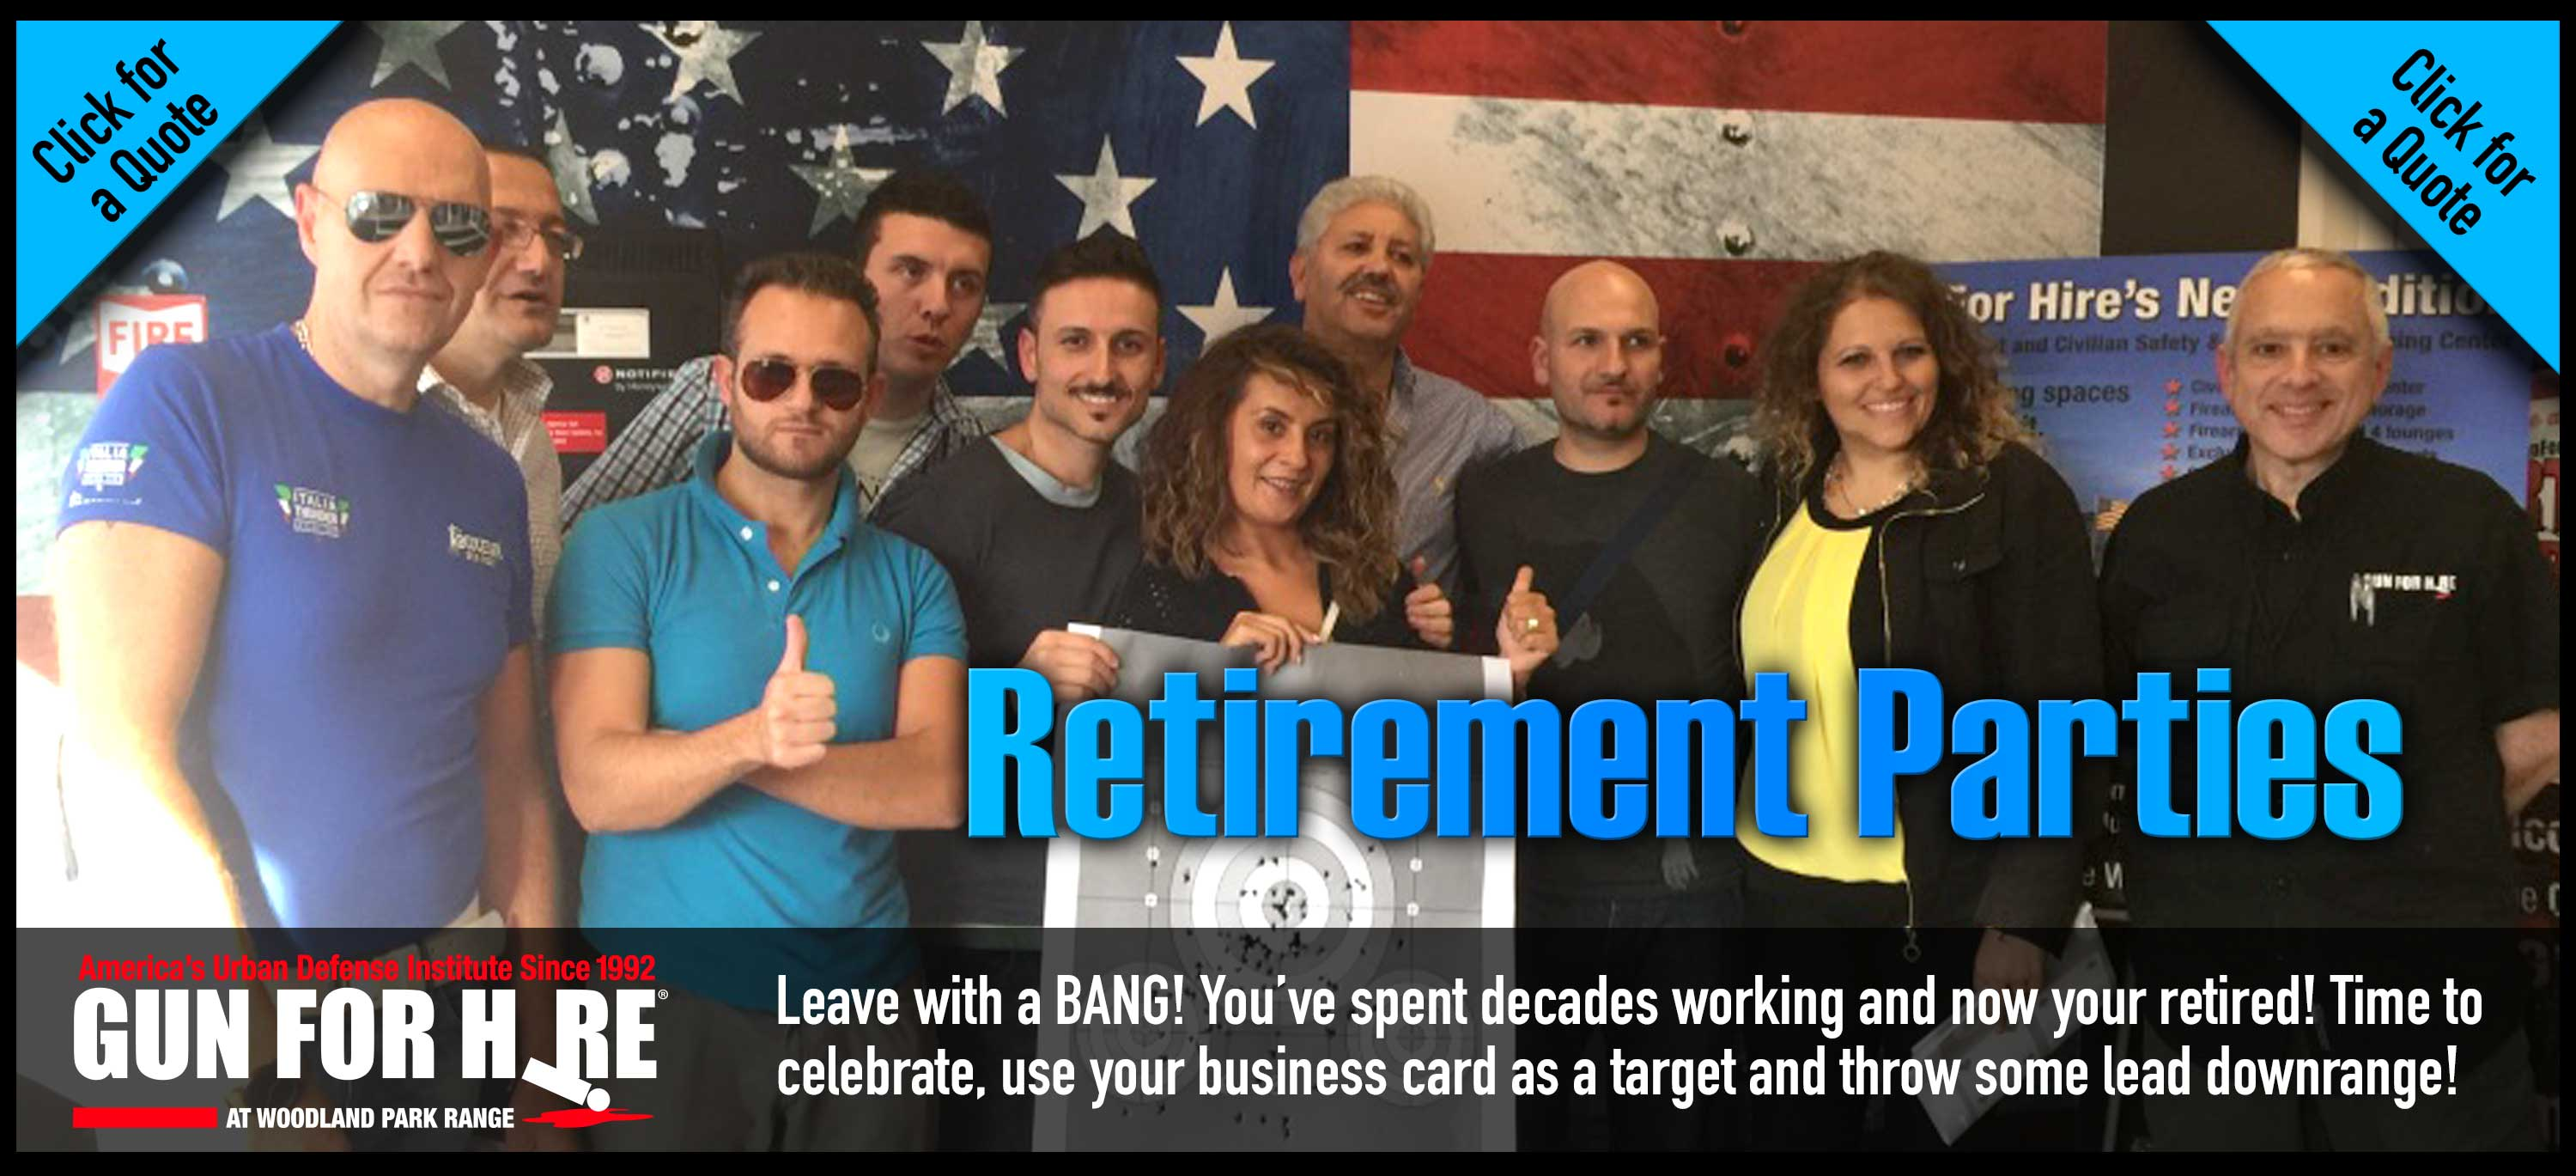 Retirement party ideas - Events and Parties